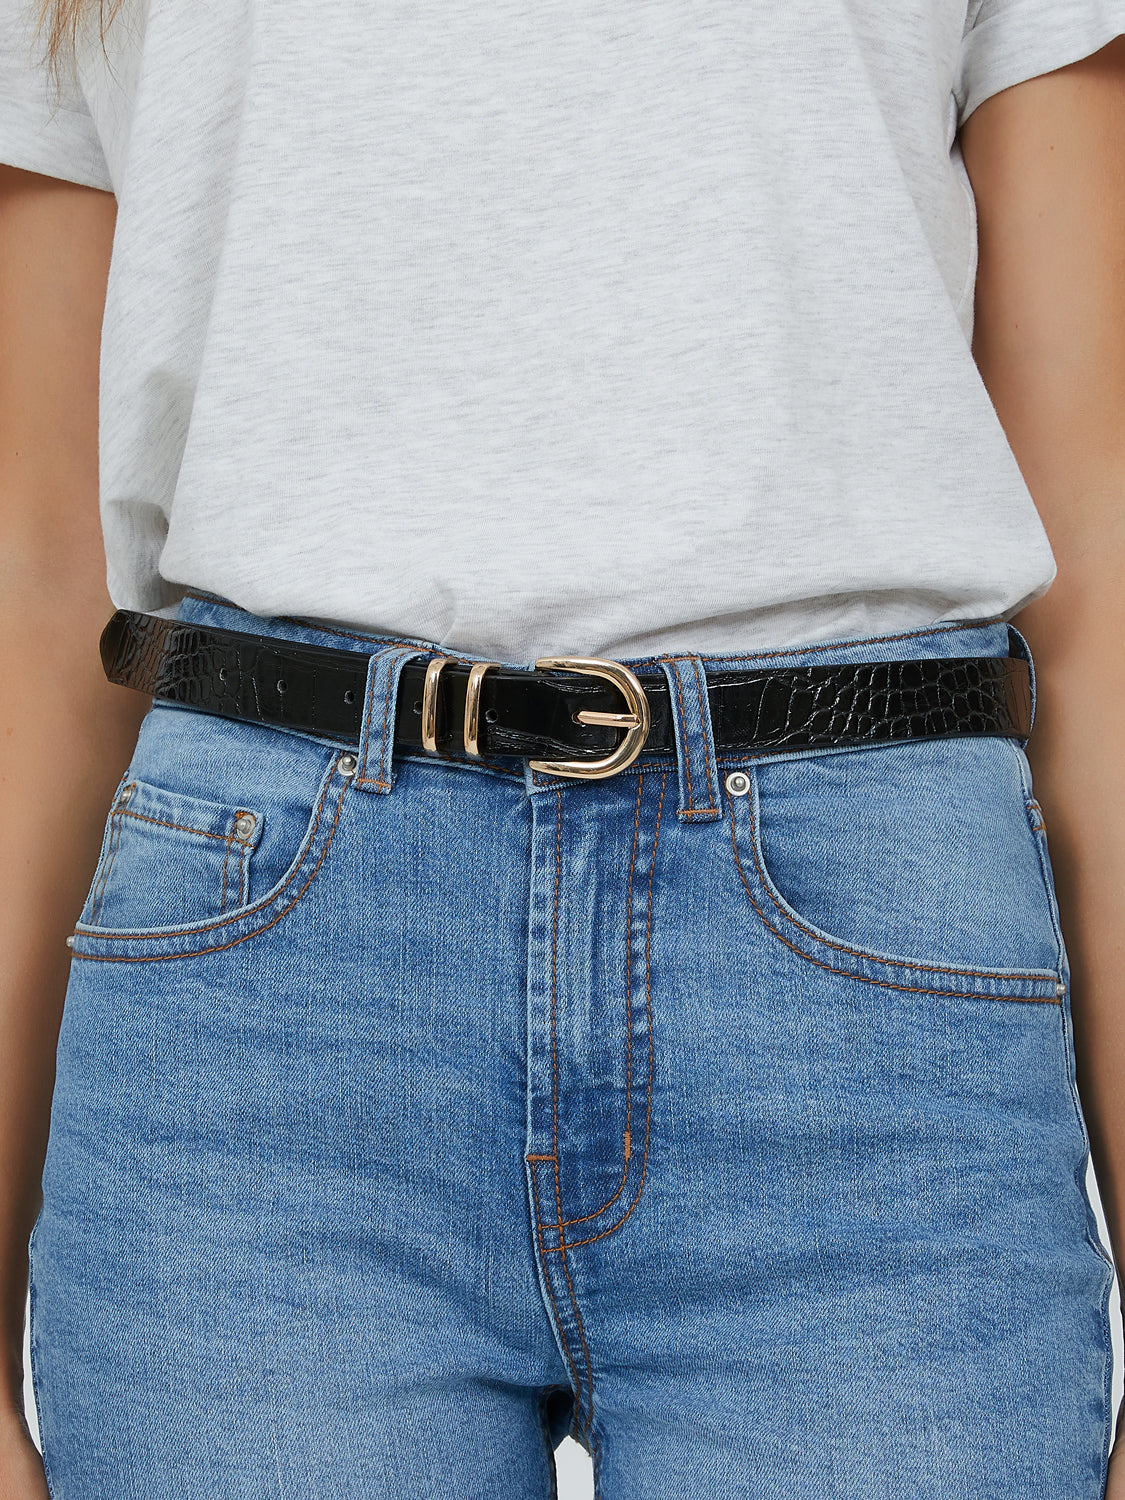 Croc Design Buckle Belt